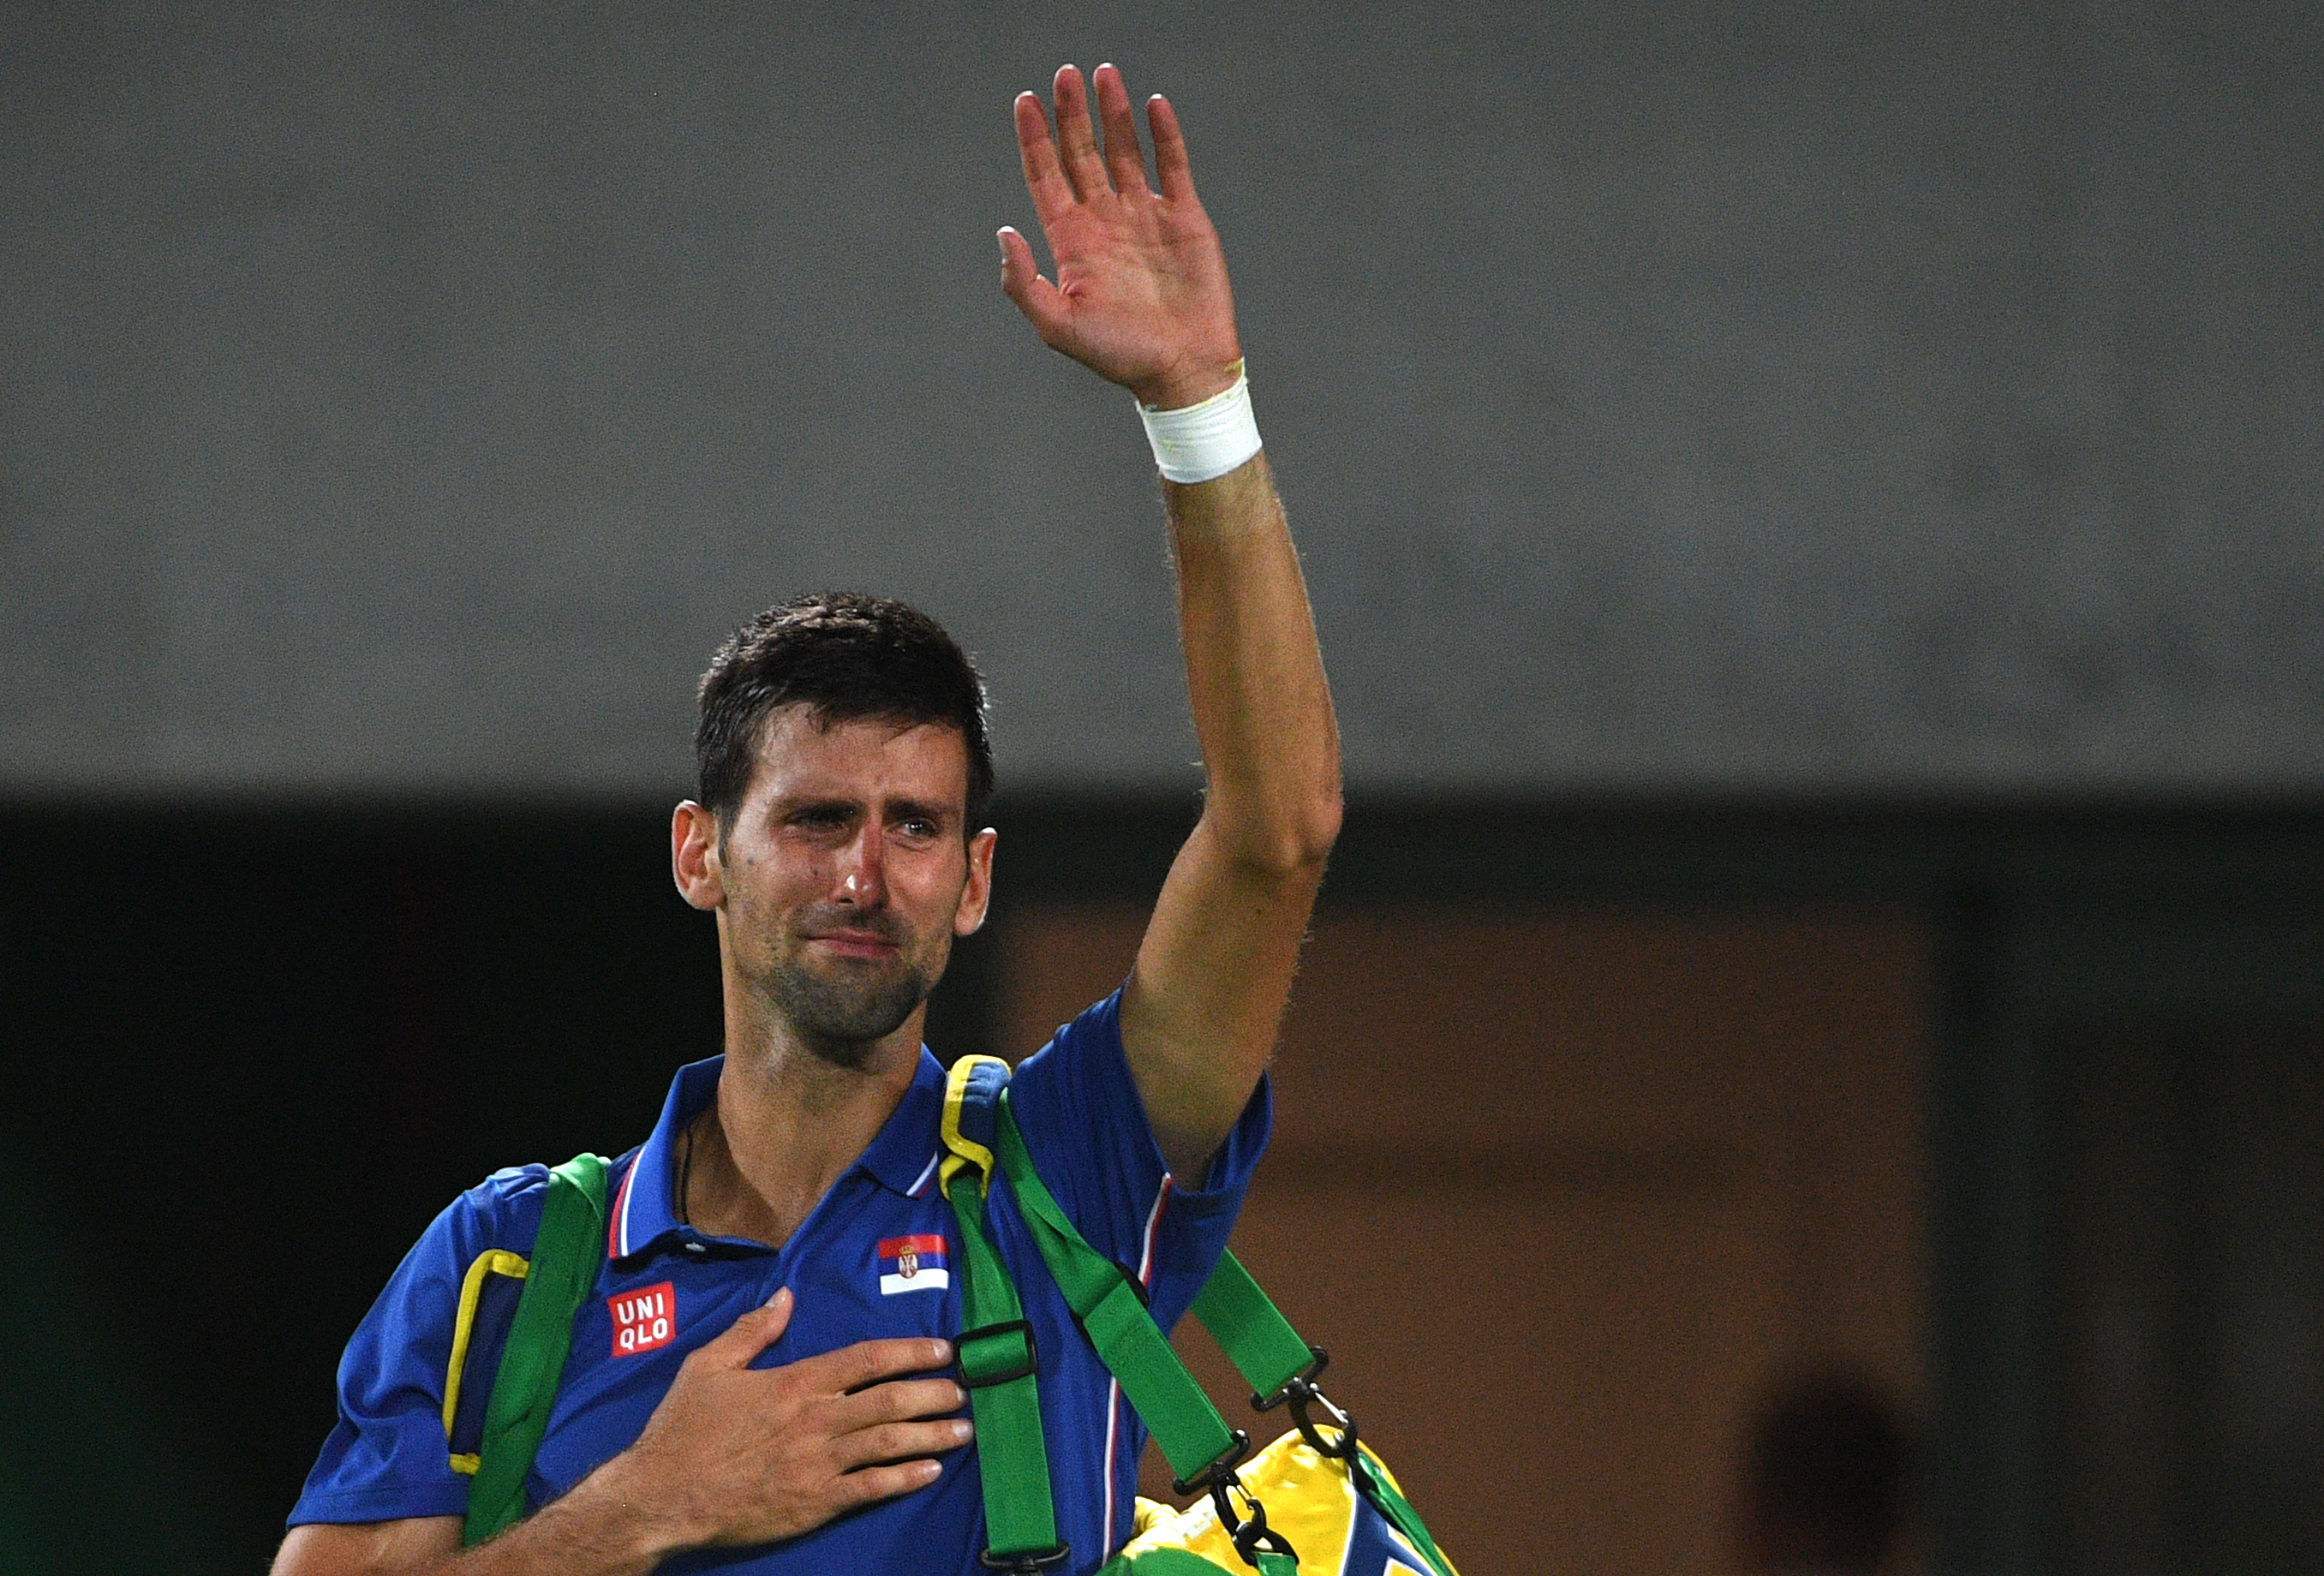 Serbia's Novak Djokovic waves to the crowd with tears in his eyes after losing his men's first round singles tennis match against Argentina's Juan Martin Del Potro at the Olympic Tennis Centre of the Rio 2016 Olympic Games in Rio de Janeiro on August 7, 2016. / AFP PHOTO / Roberto SCHMIDT